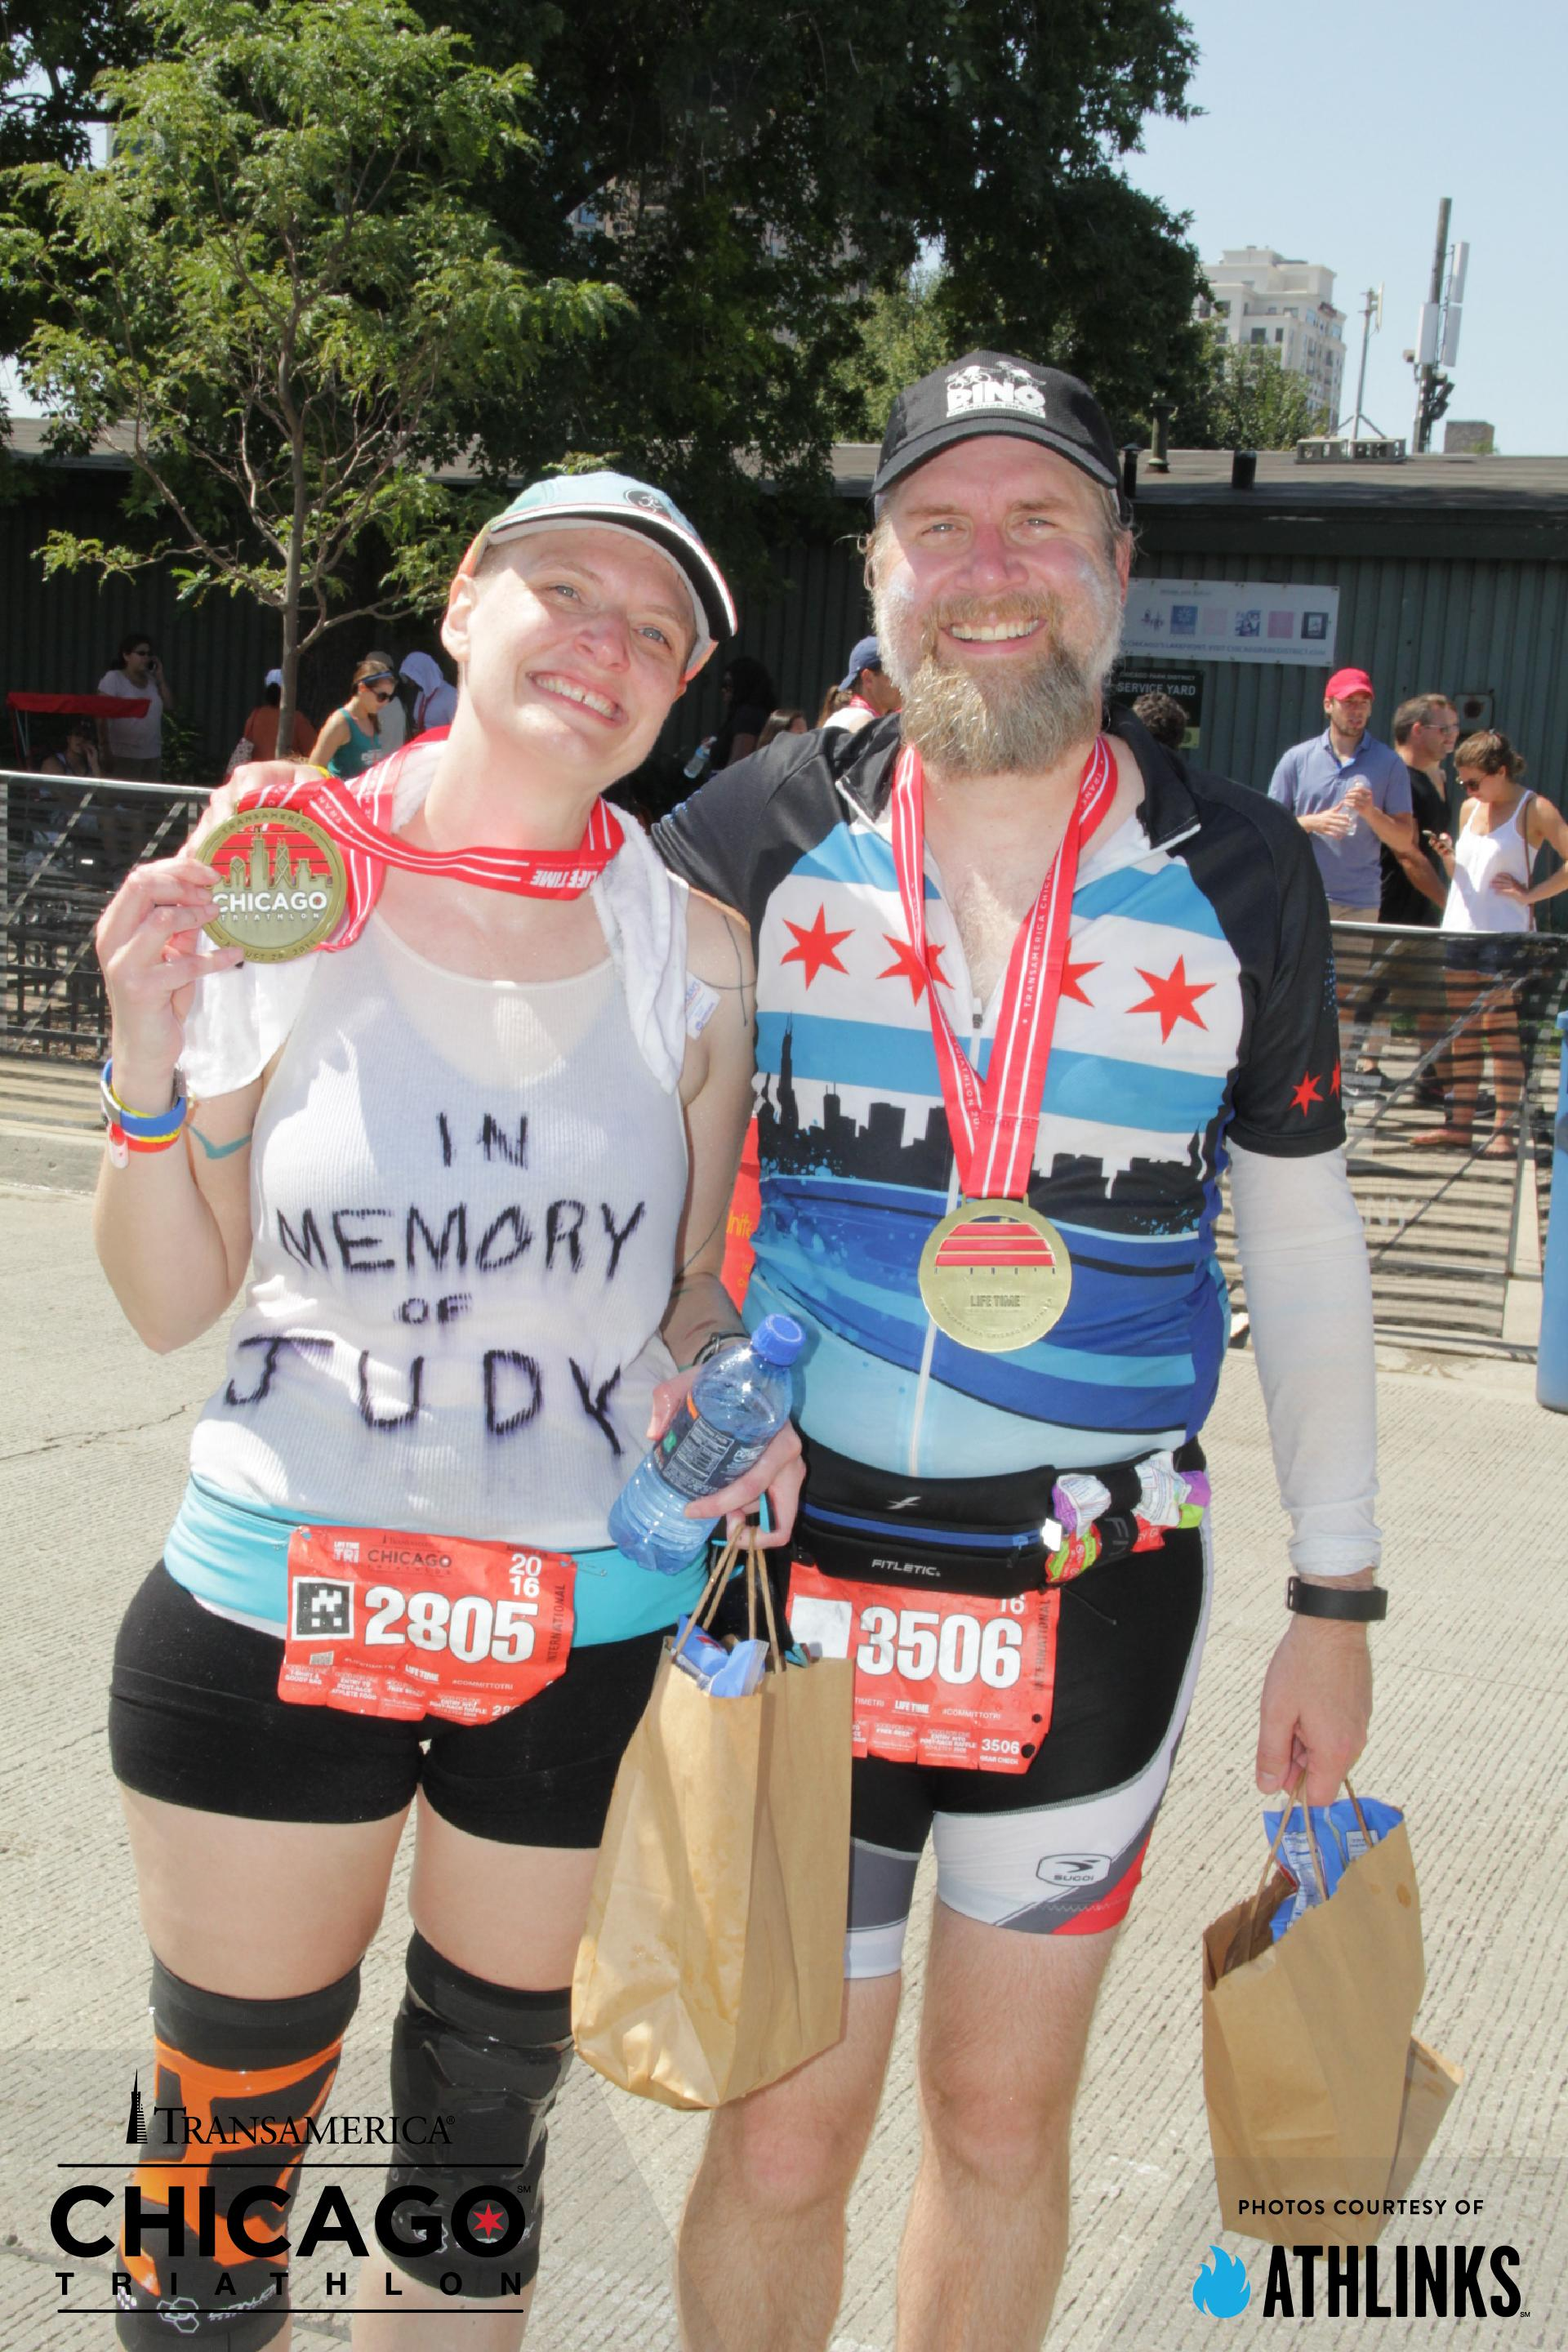 Erica and Fuzzy - Chicago Triathlon 2016